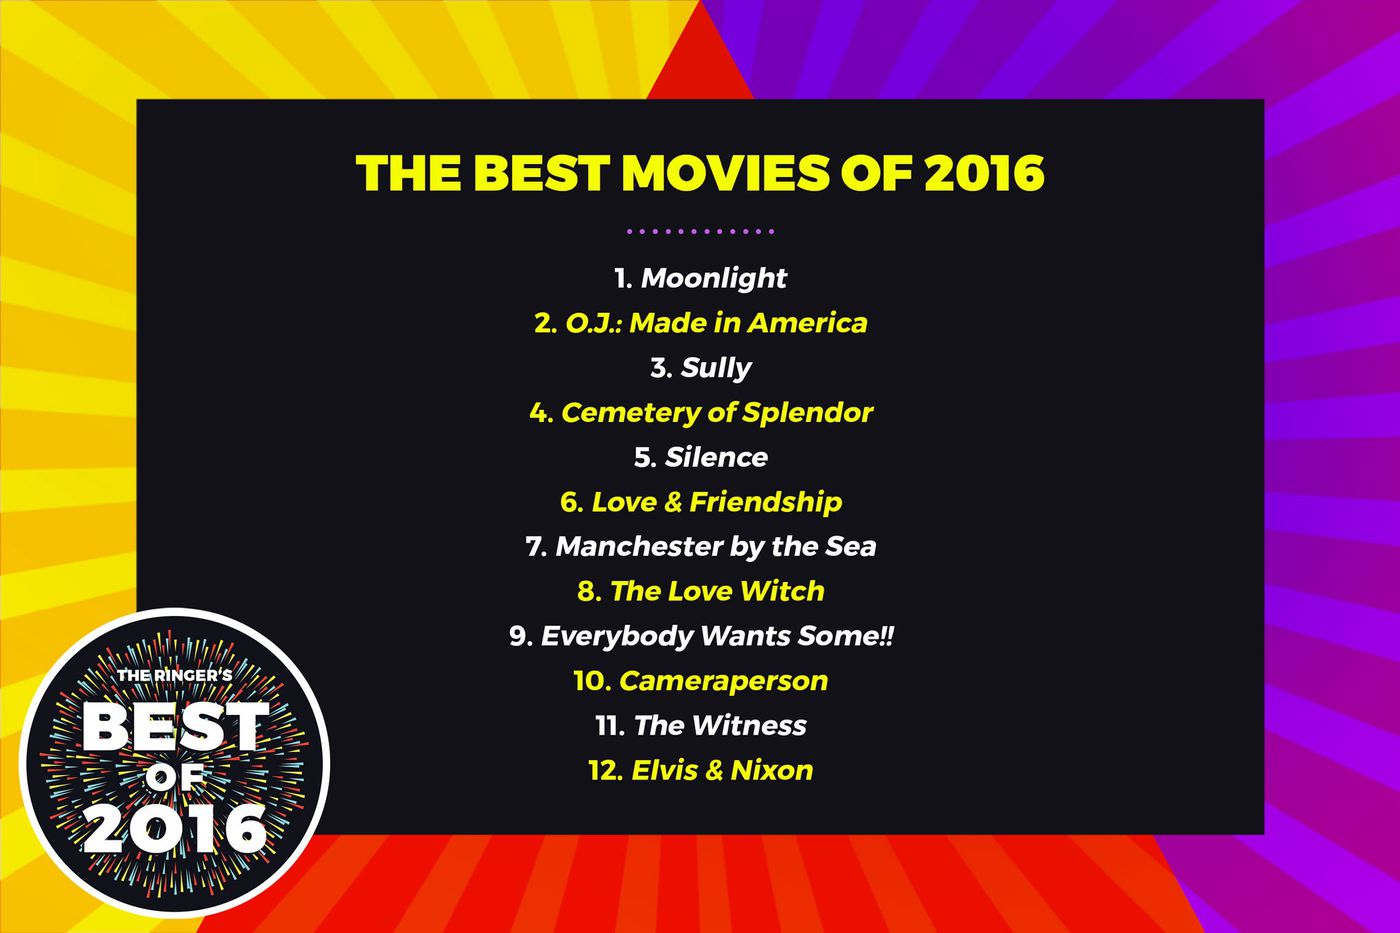 the best movies of